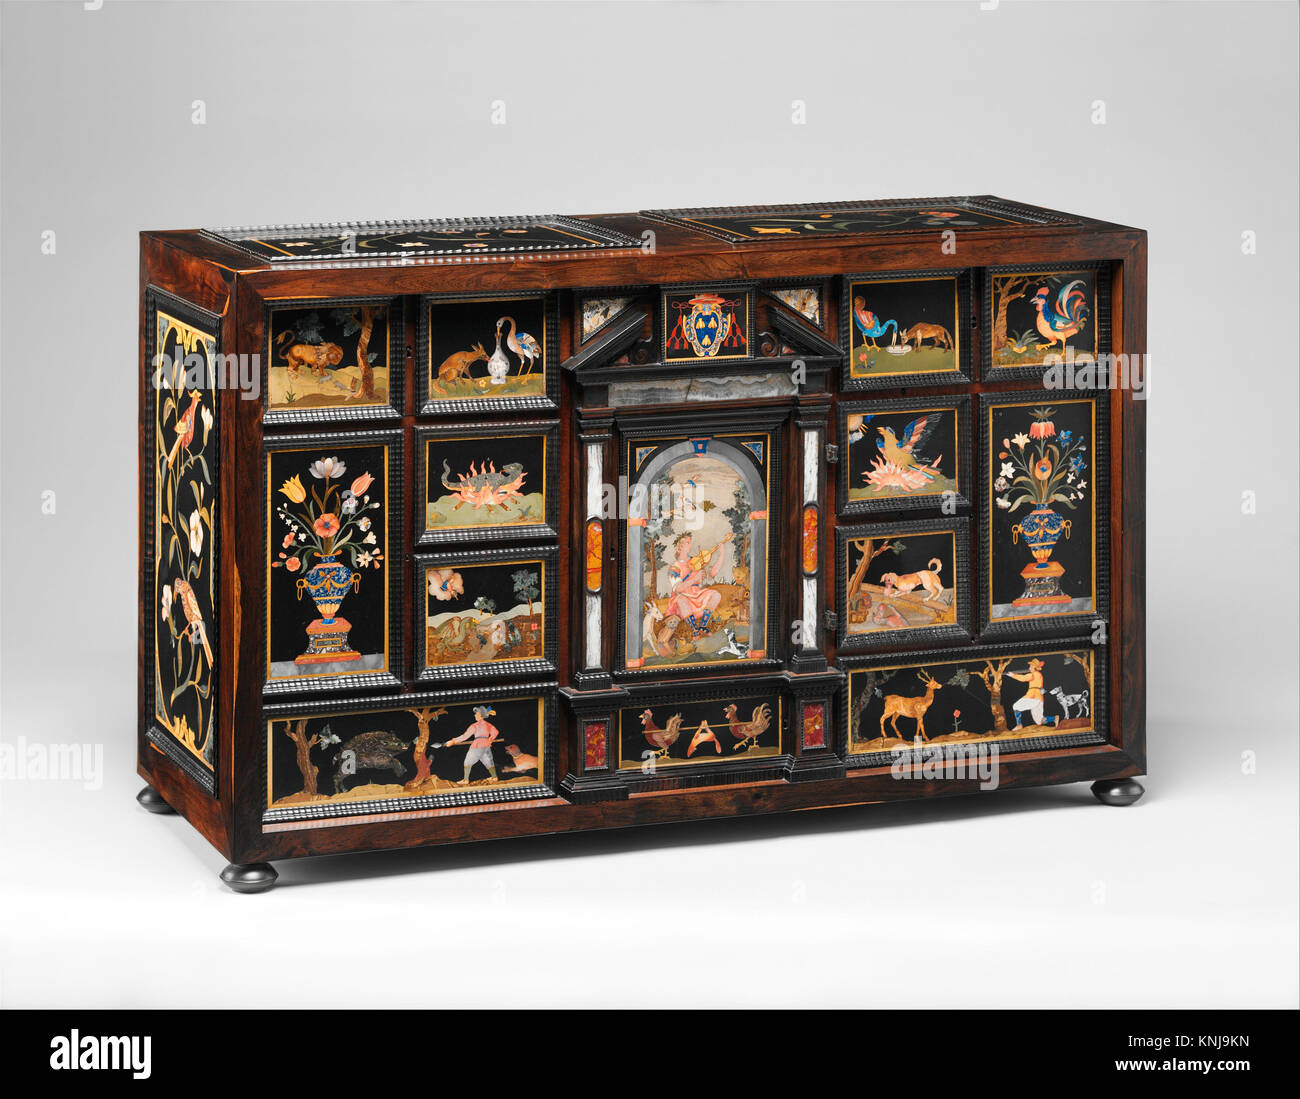 Barberini Cabinet. Maker: Galleria dei Lavori, Florence; Artist and publisher: After woodcut illustrations by Francesco - Stock Image